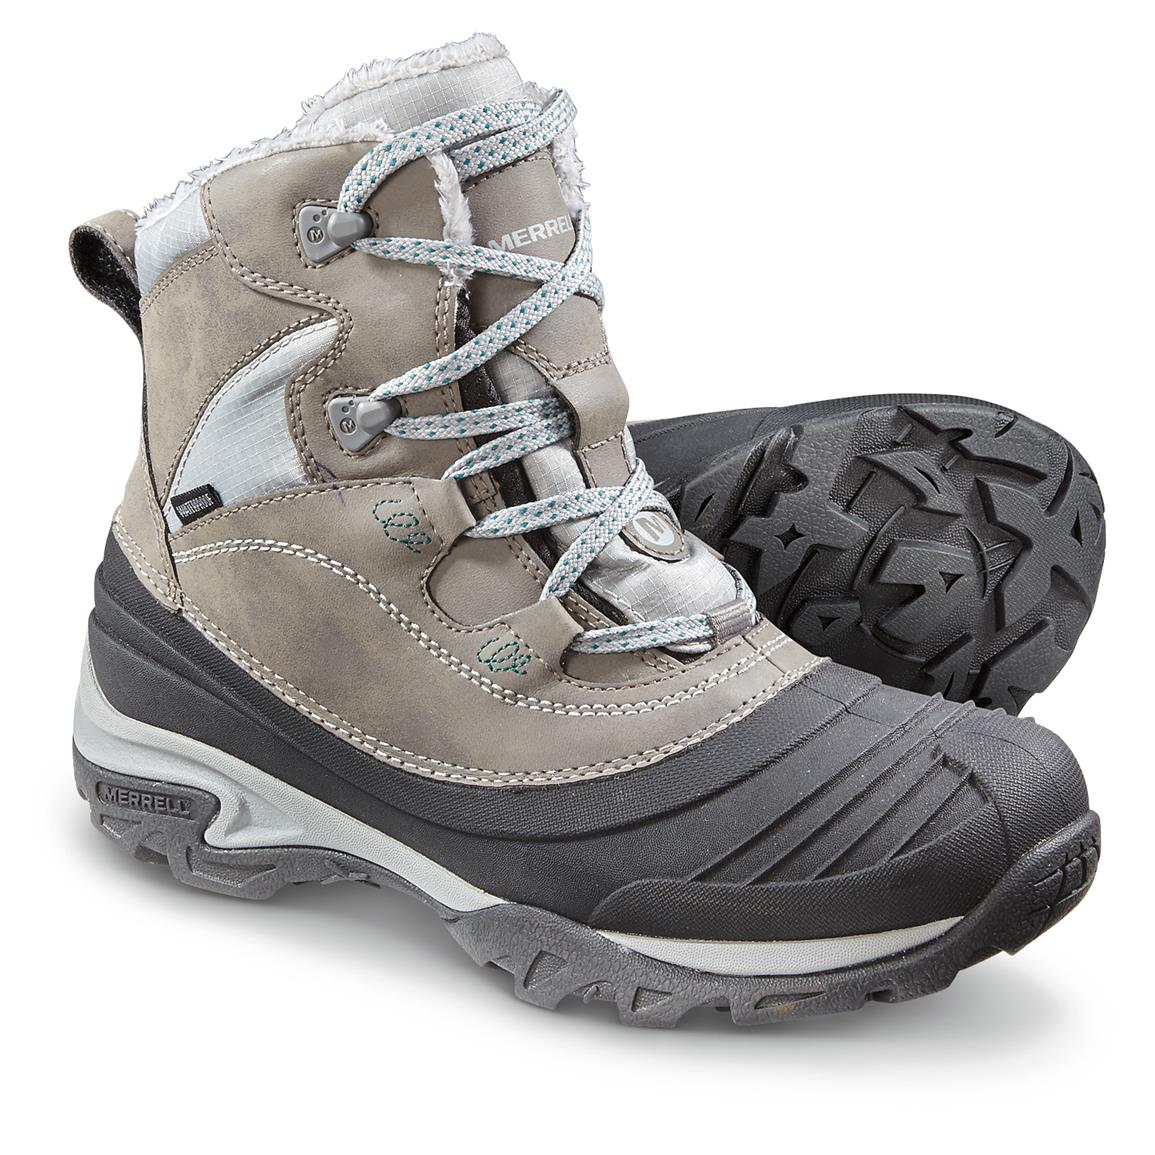 Women's Merrell Waterproof Snowbound Mid Boots, Charcoal